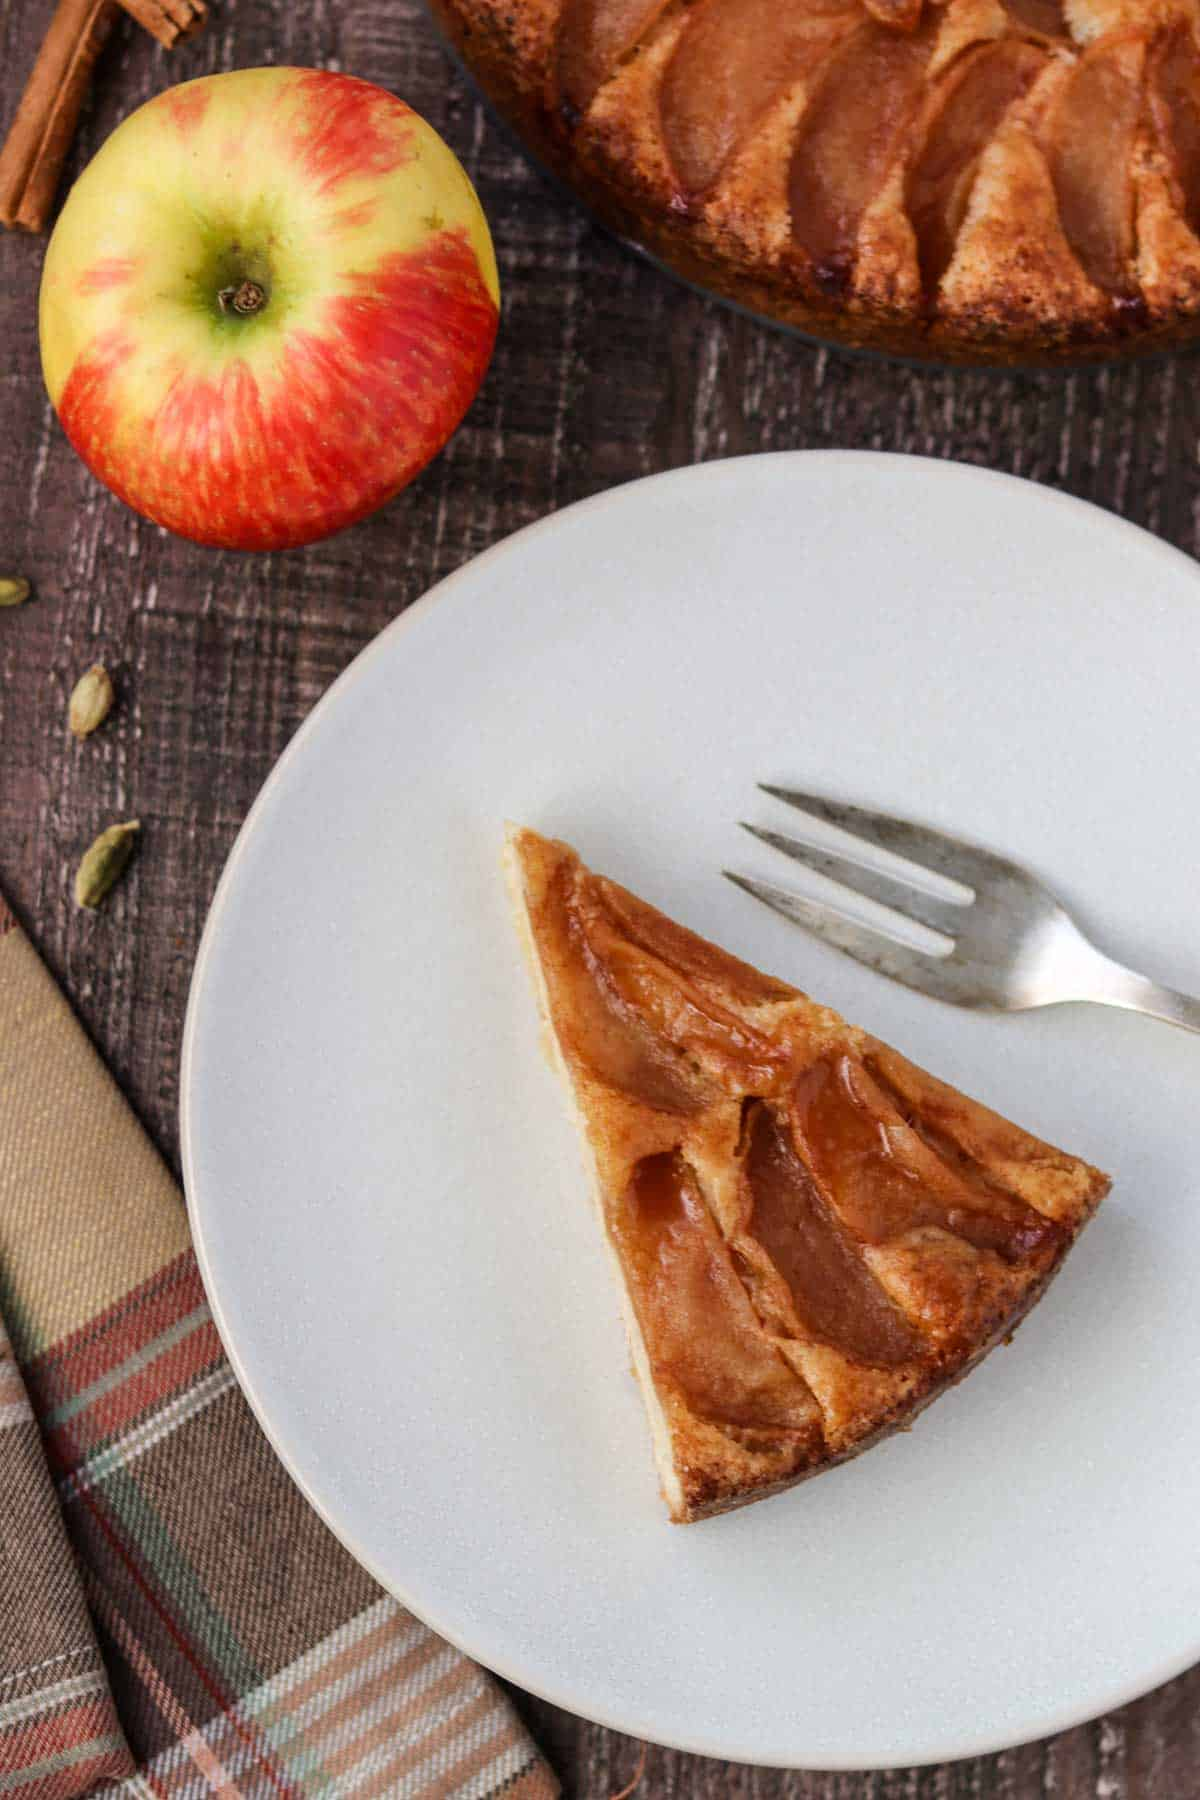 Slice of Swedish Apple Cake on a plate next to a fork, apple and plaid napkin.